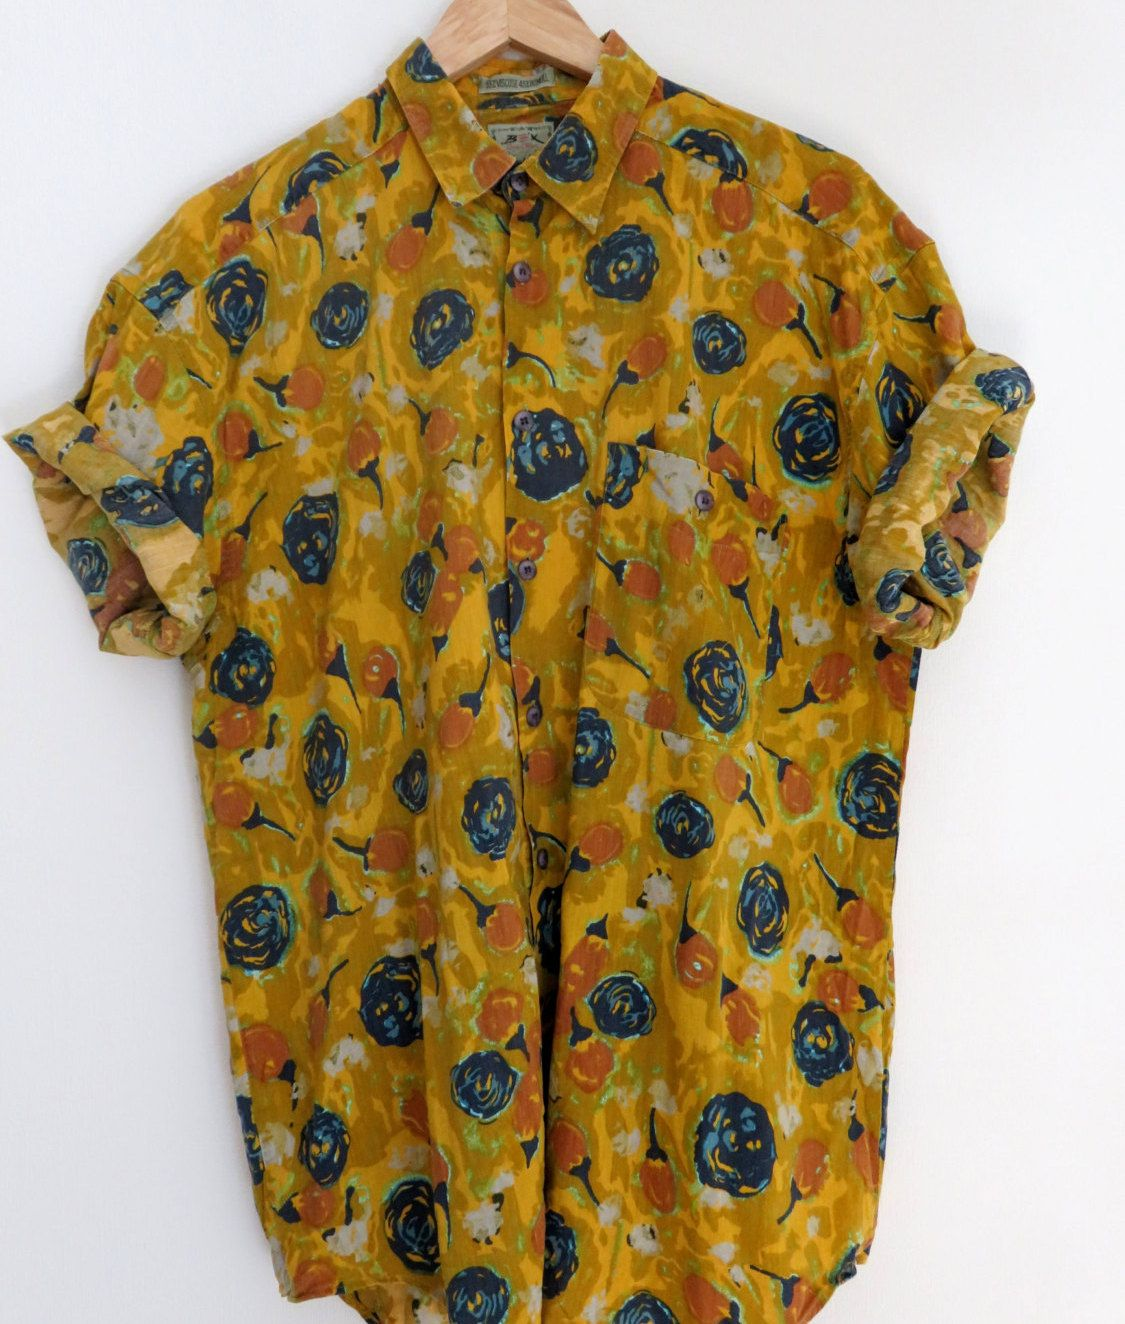 b2bc925b Lovley vintage men's short sleeve button up shirt, yellow with blue floral  print and one chest pocket + nice and soft // Men's size - Large/41/42.